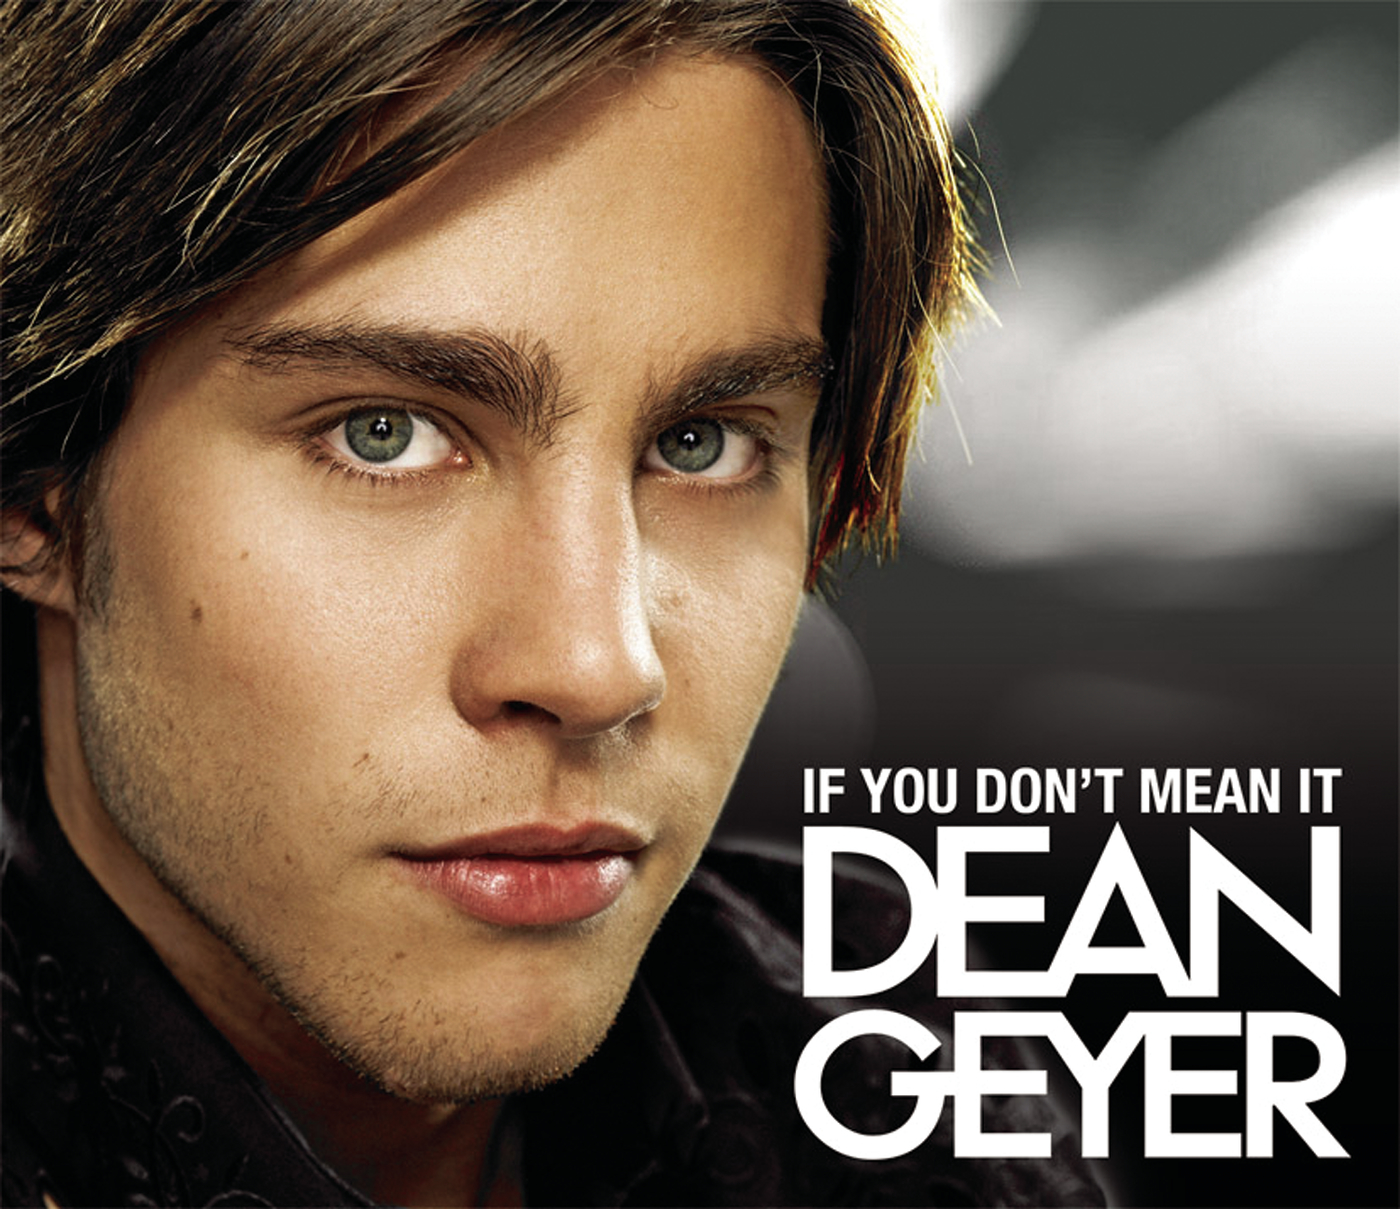 If You Don't Mean It - Dean Geyer